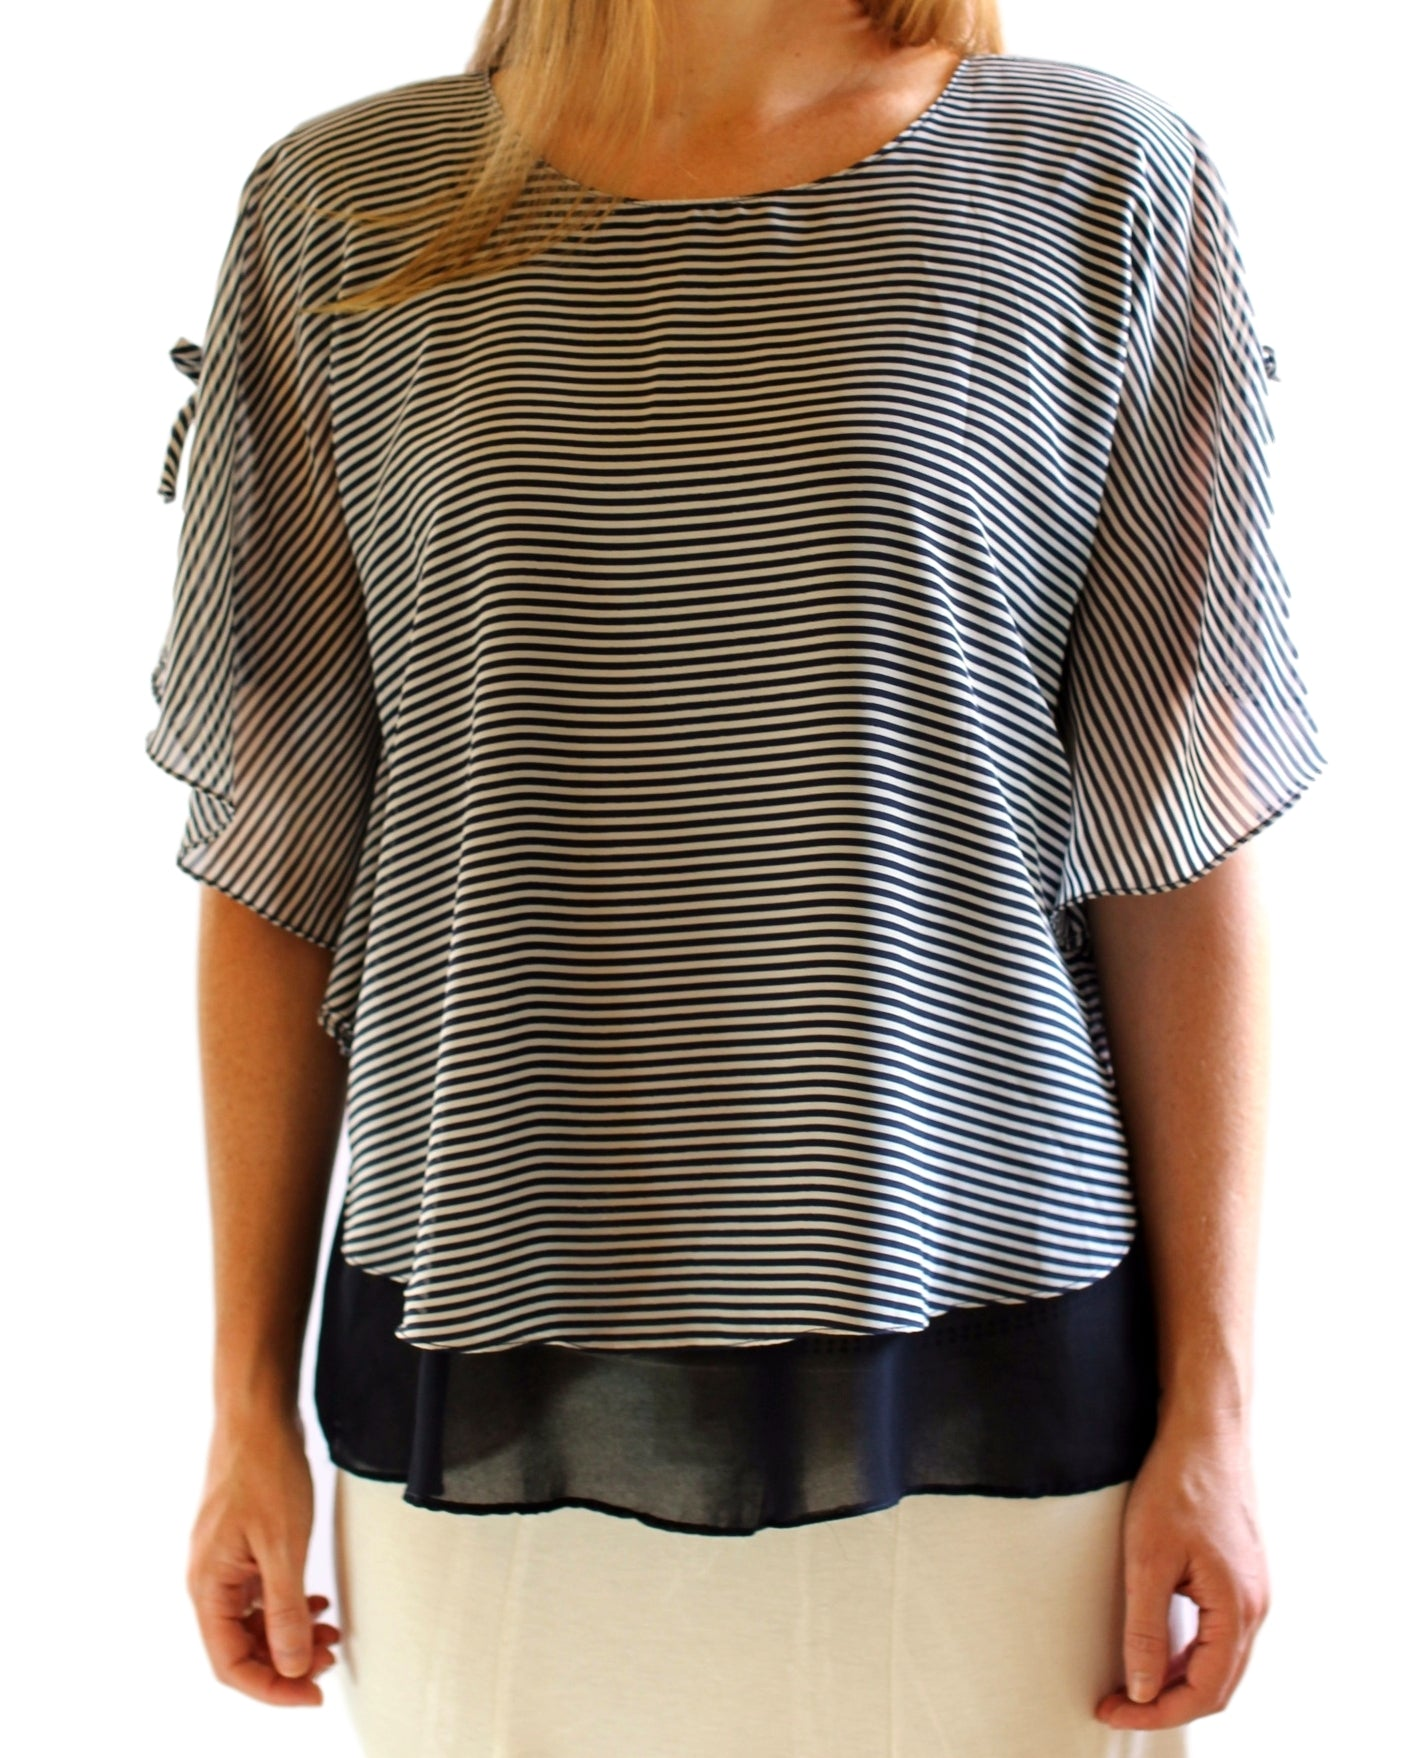 Chiffon with Stripes Ruana Style Blouse